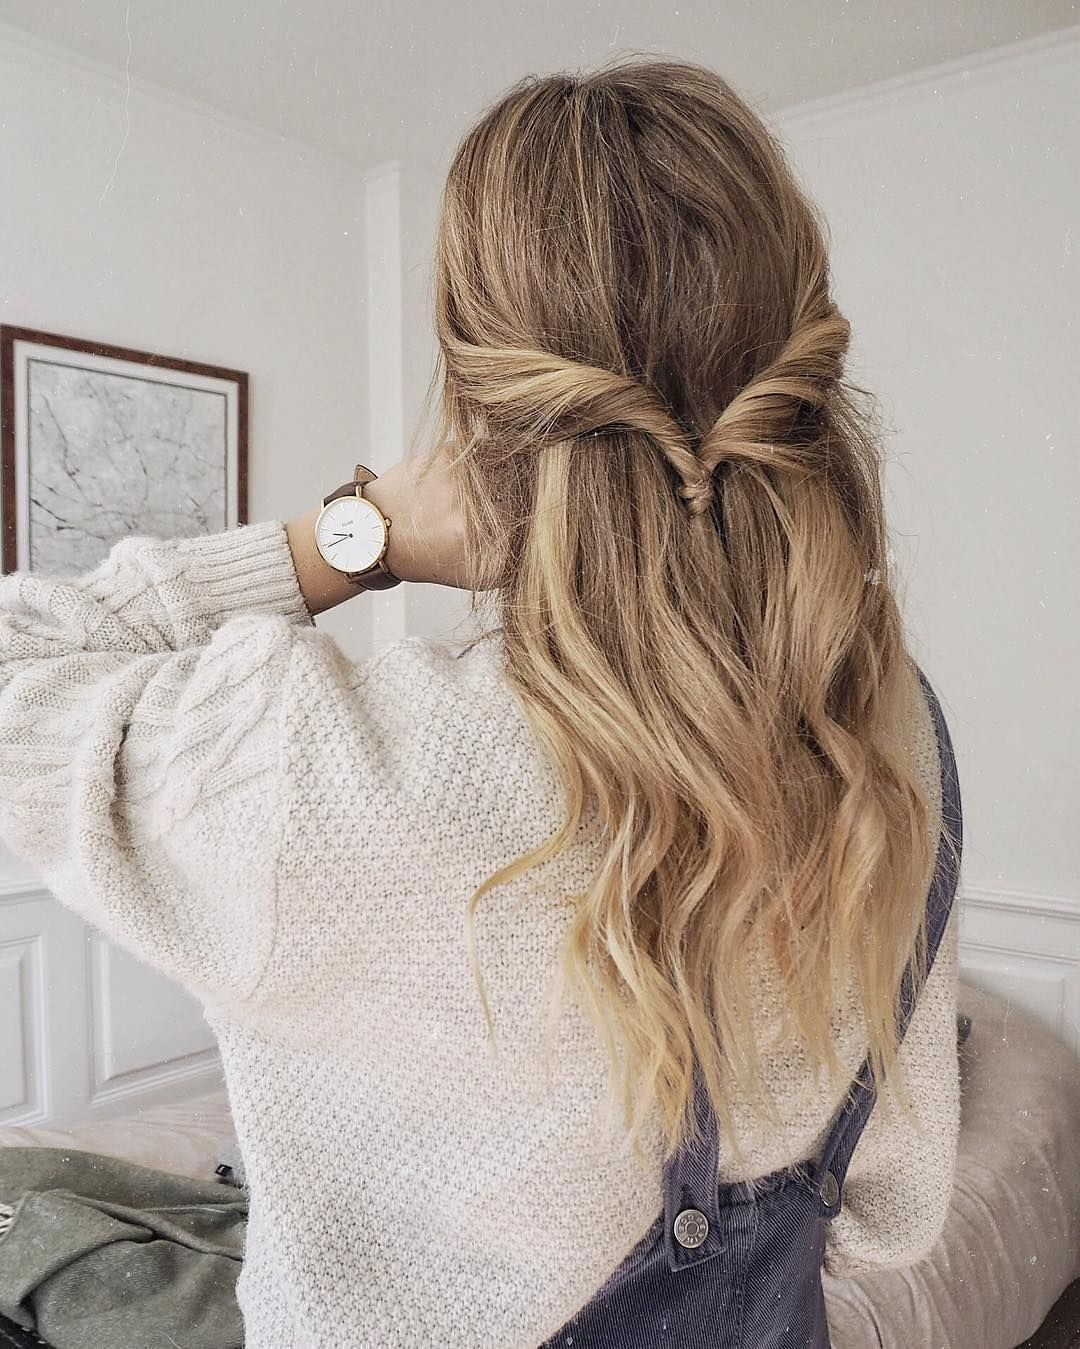 Cluse clusewatches u isabellath hair beauty pinterest